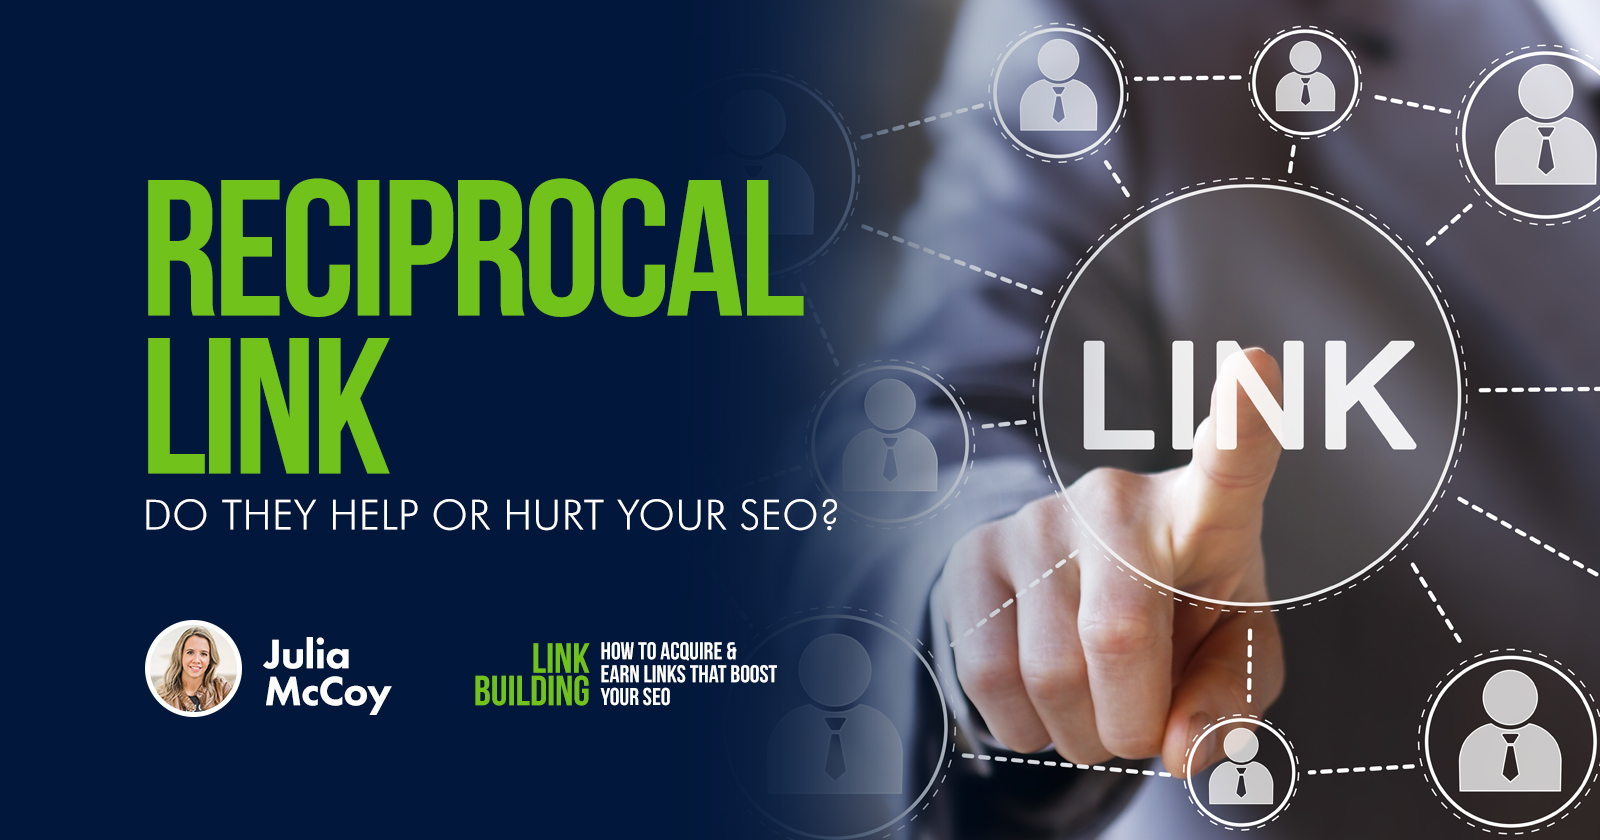 Reciprocal Links: Do They Help or Hurt Your SEO? via @JuliaEMcCoy